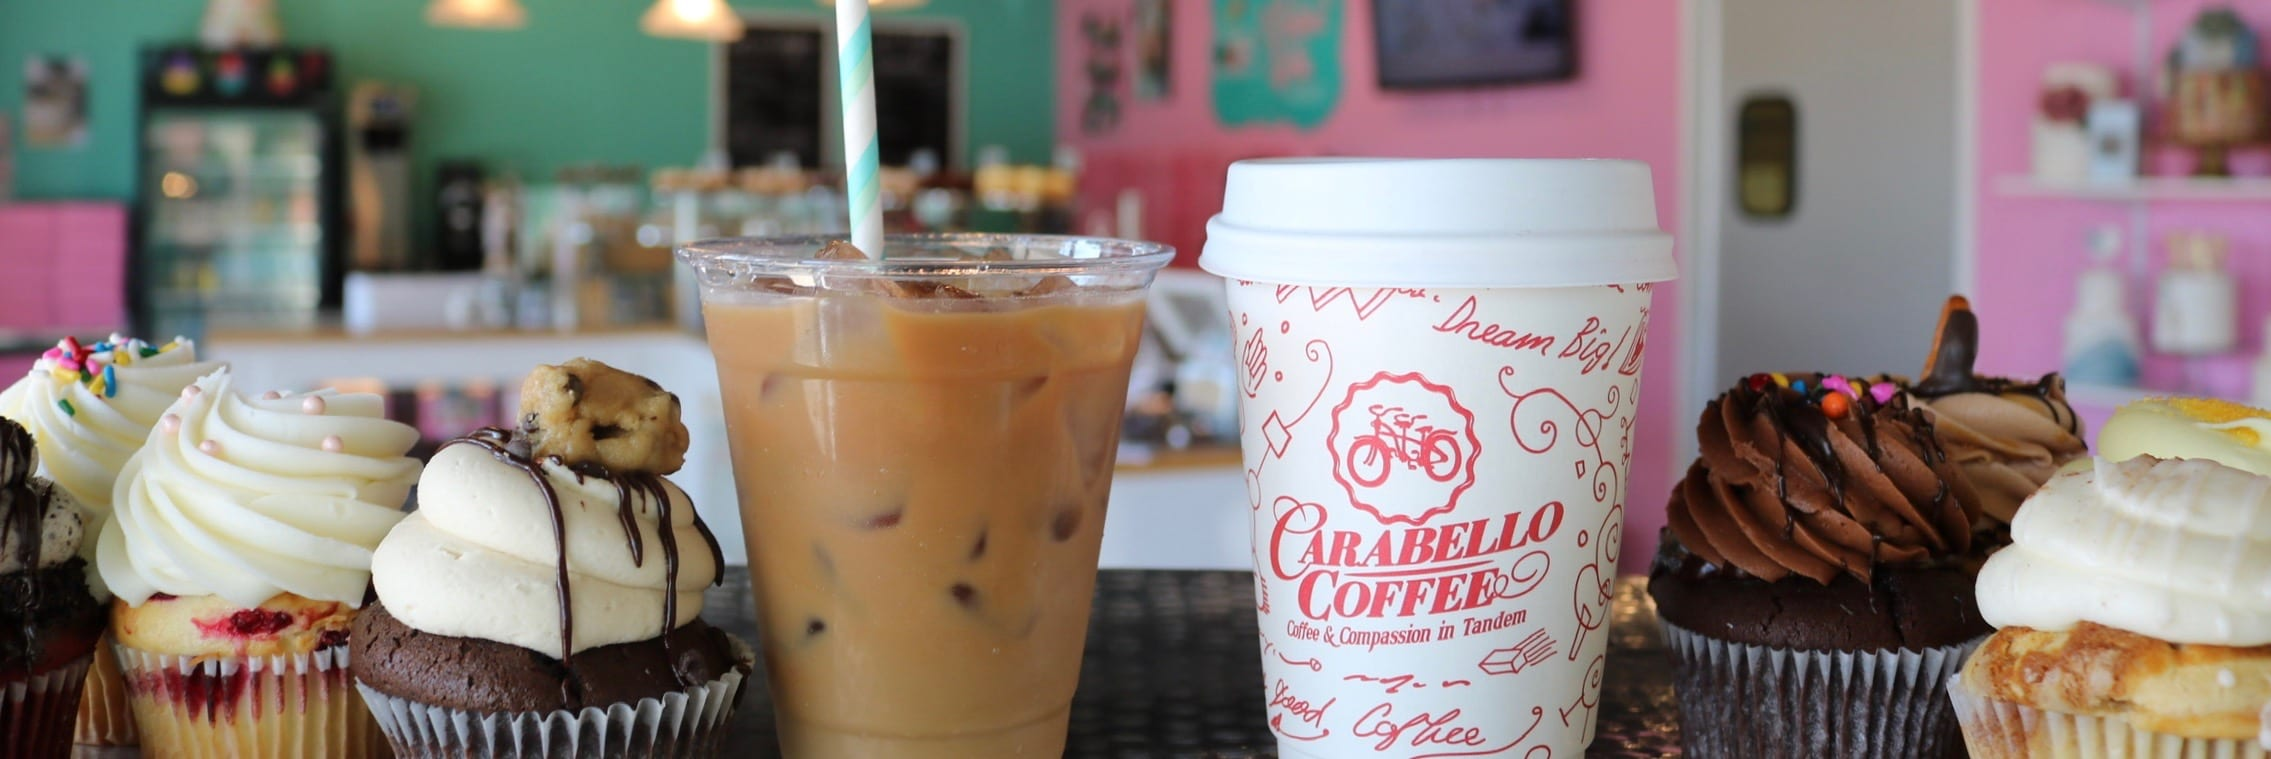 Carabello Coffee at 3 Sweet Girls Cakery